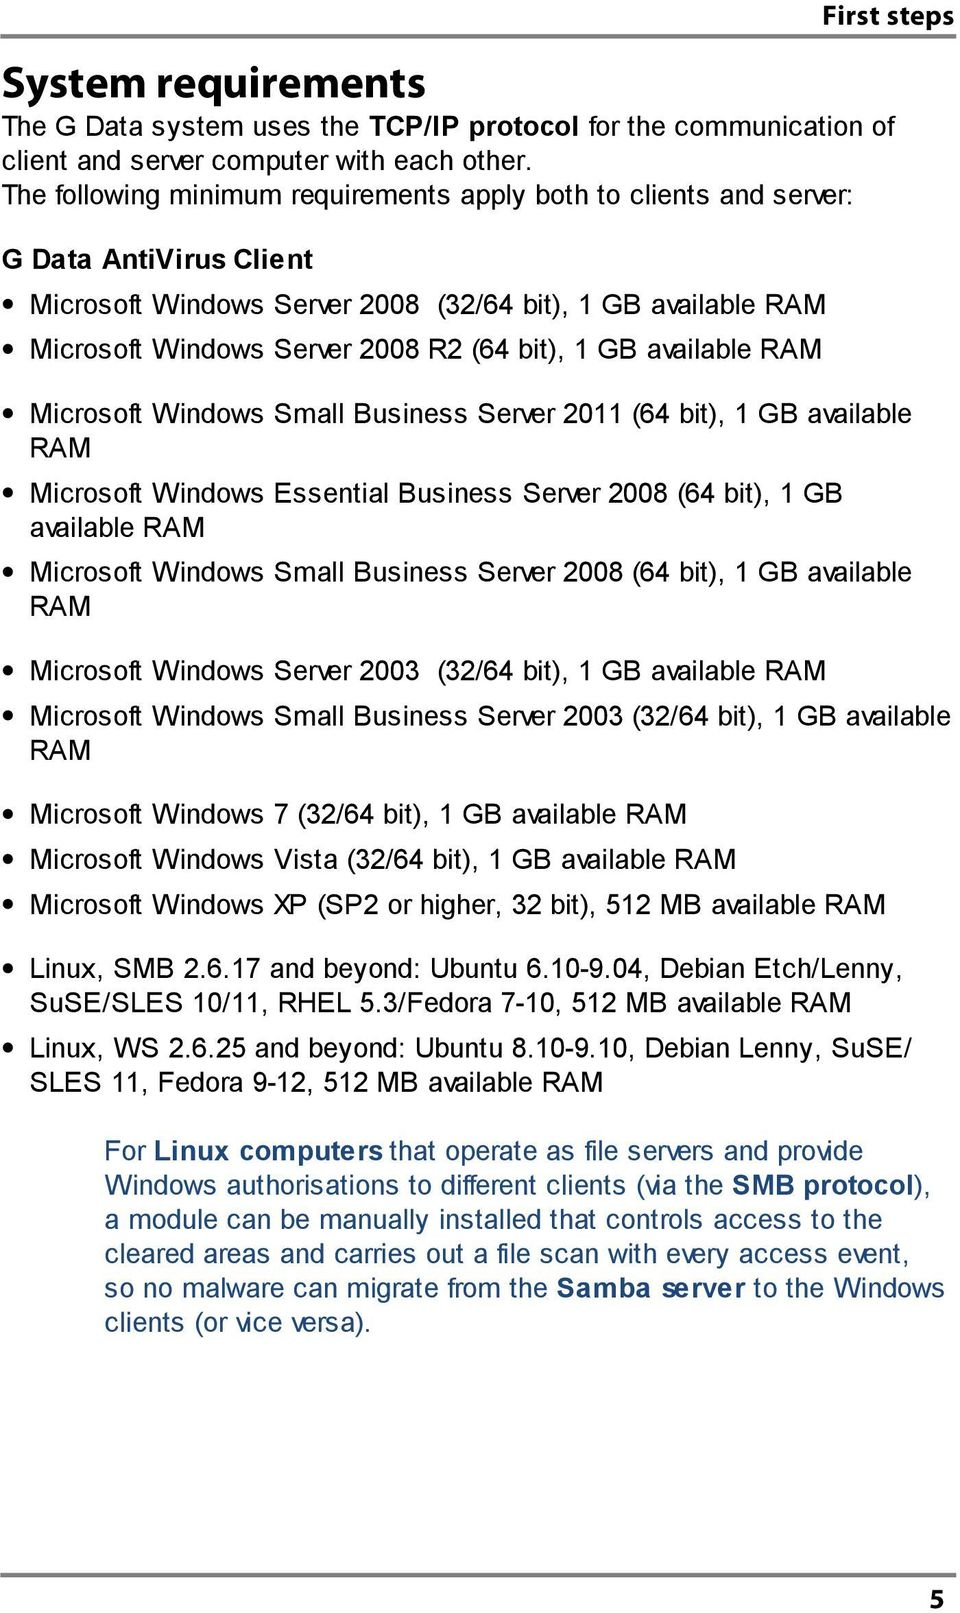 GB available RAM Microsoft Windows Small Business Server 2011 (64 bit), 1 GB available RAM Microsoft Windows Essential Business Server 2008 (64 bit), 1 GB available RAM Microsoft Windows Small